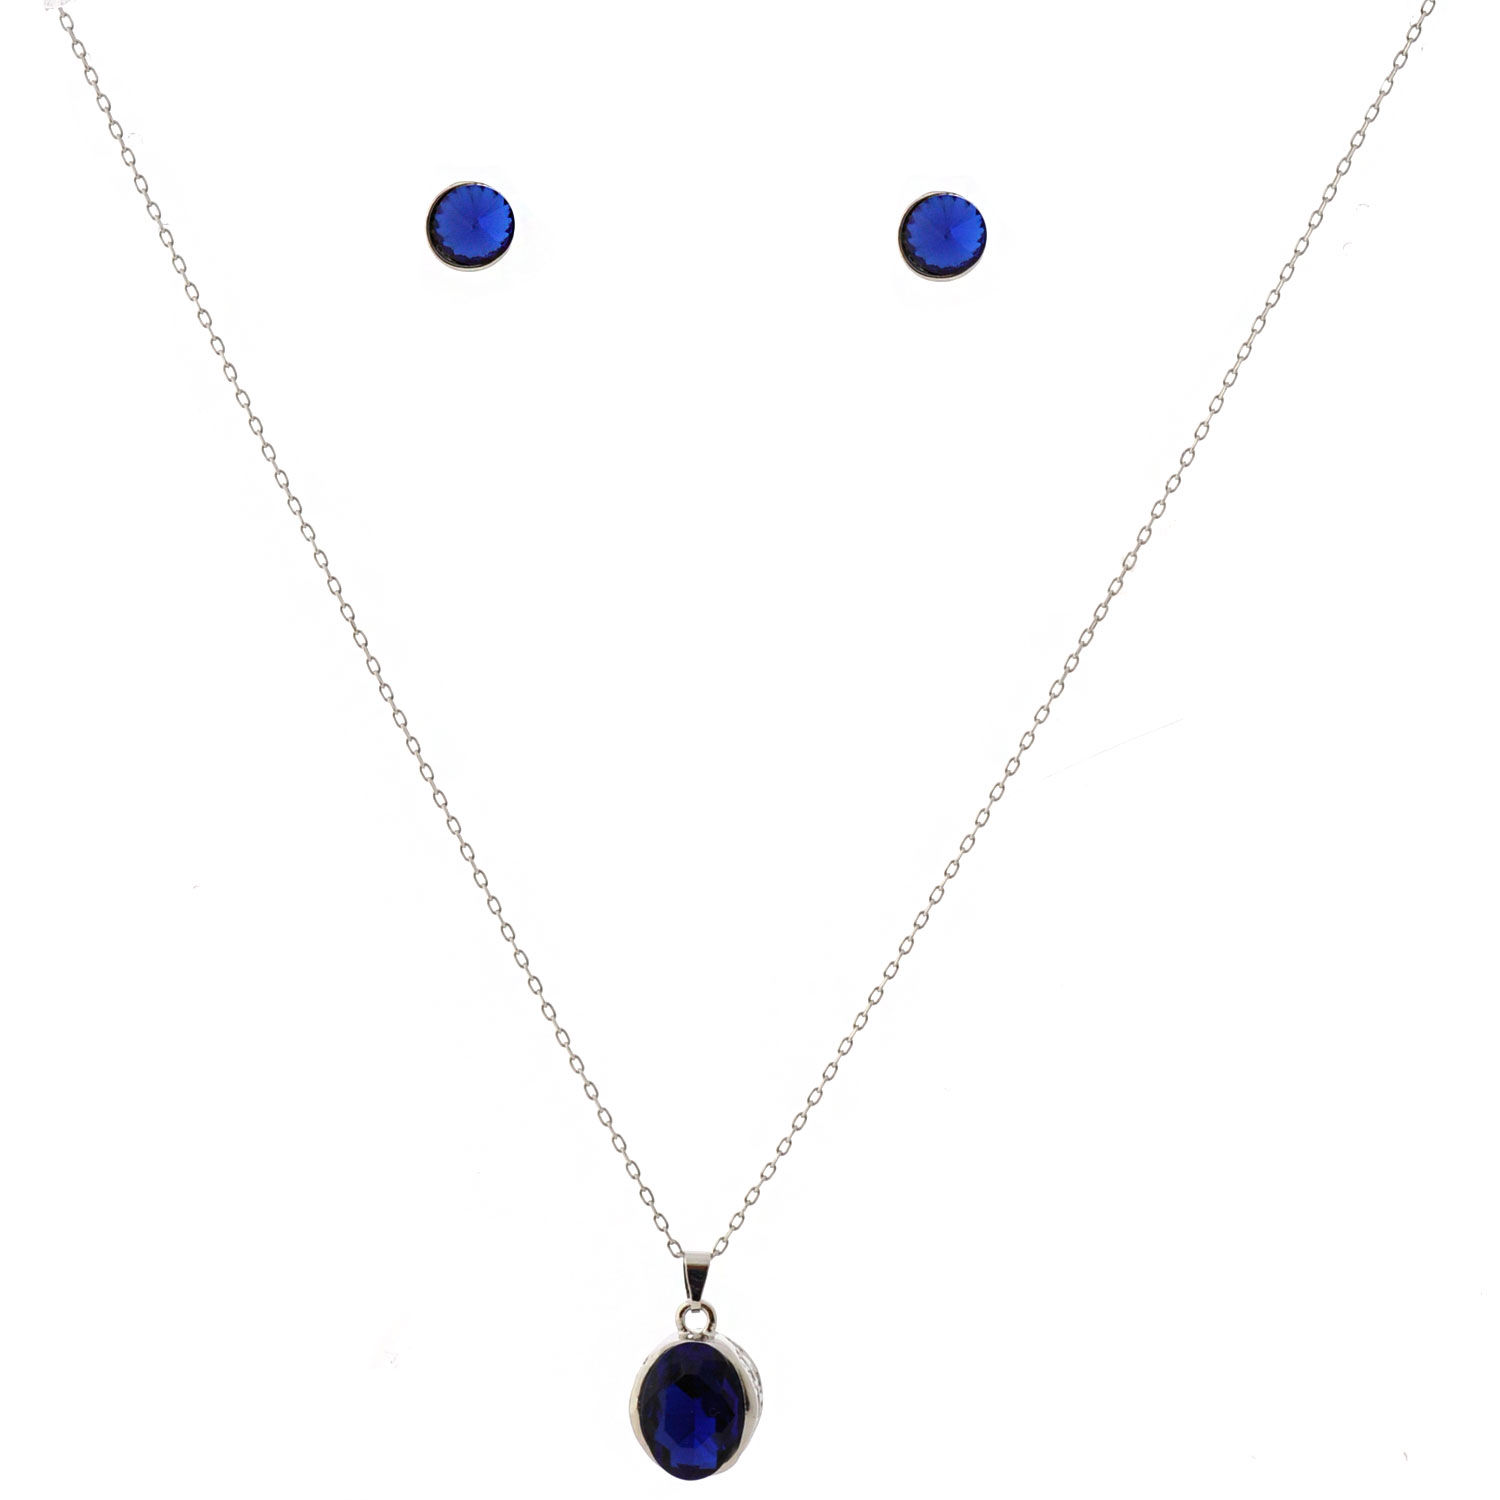 Rhodium Plating Sapphire Stud Earrings and Pendant Necklace Jewelry Set by coolcrystal